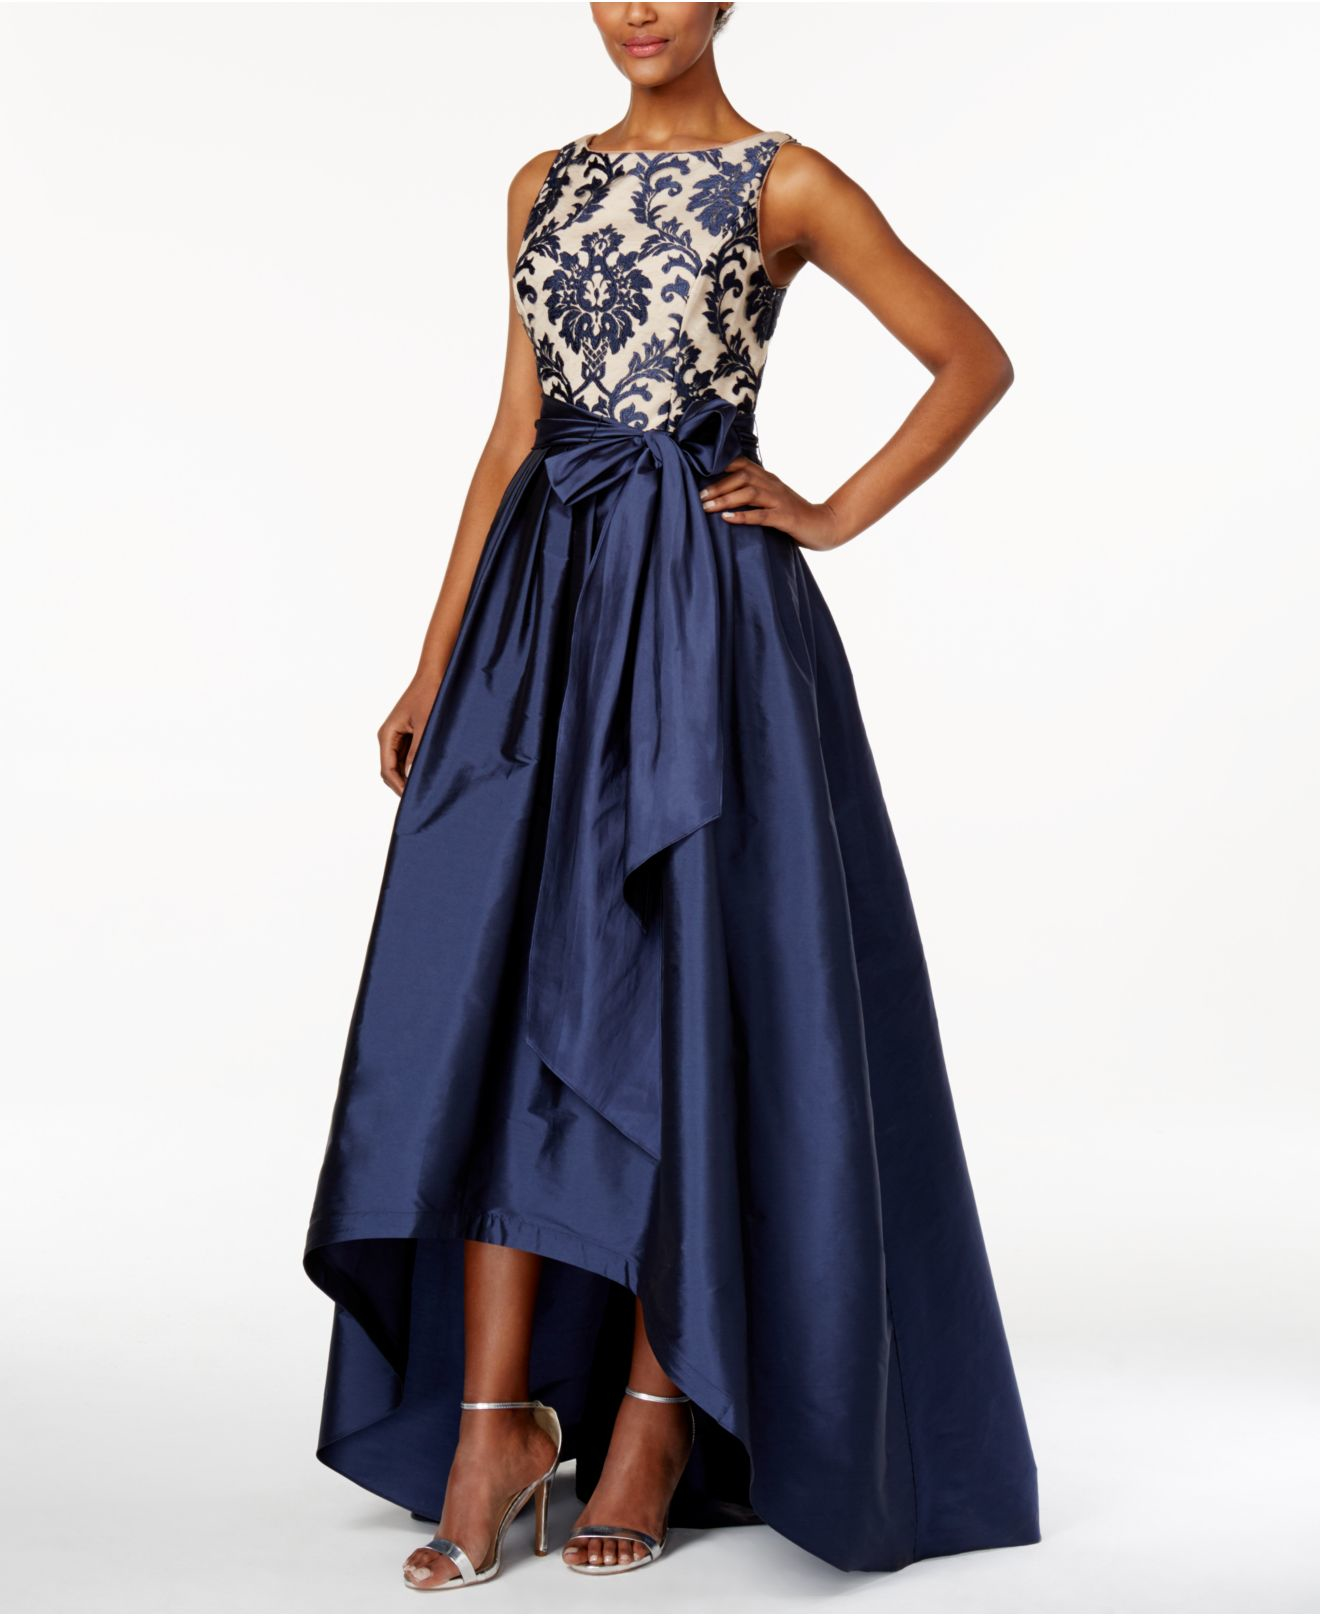 macys navy blue dresses photo - 1